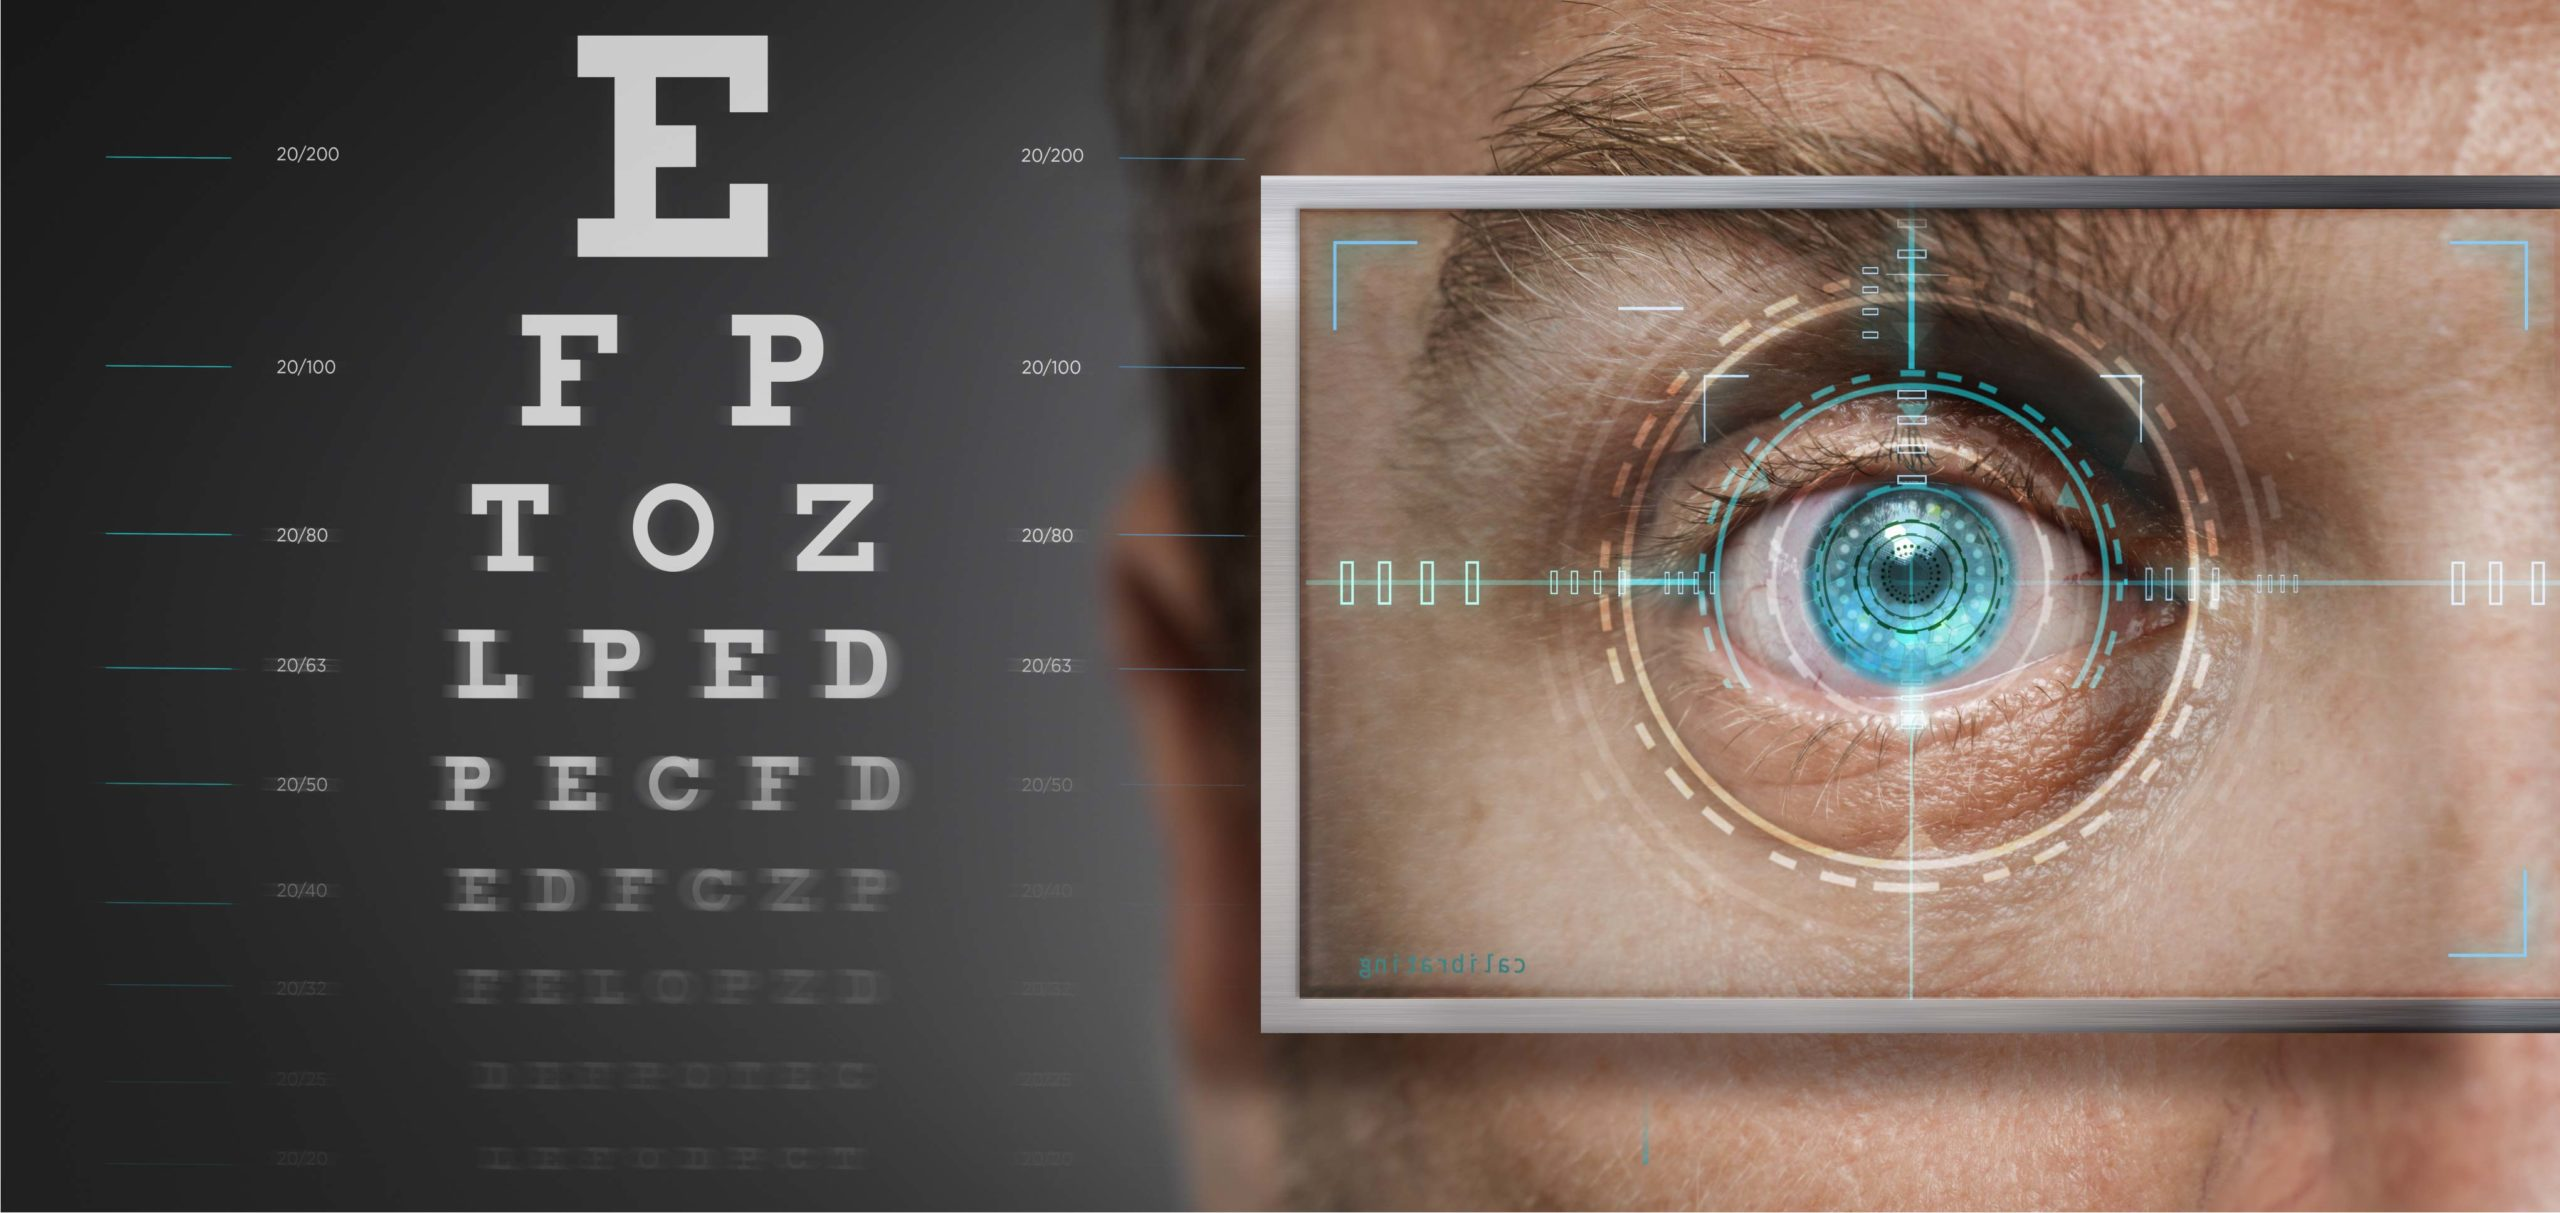 virtual eye exam scaled - Virtual Eye Exam